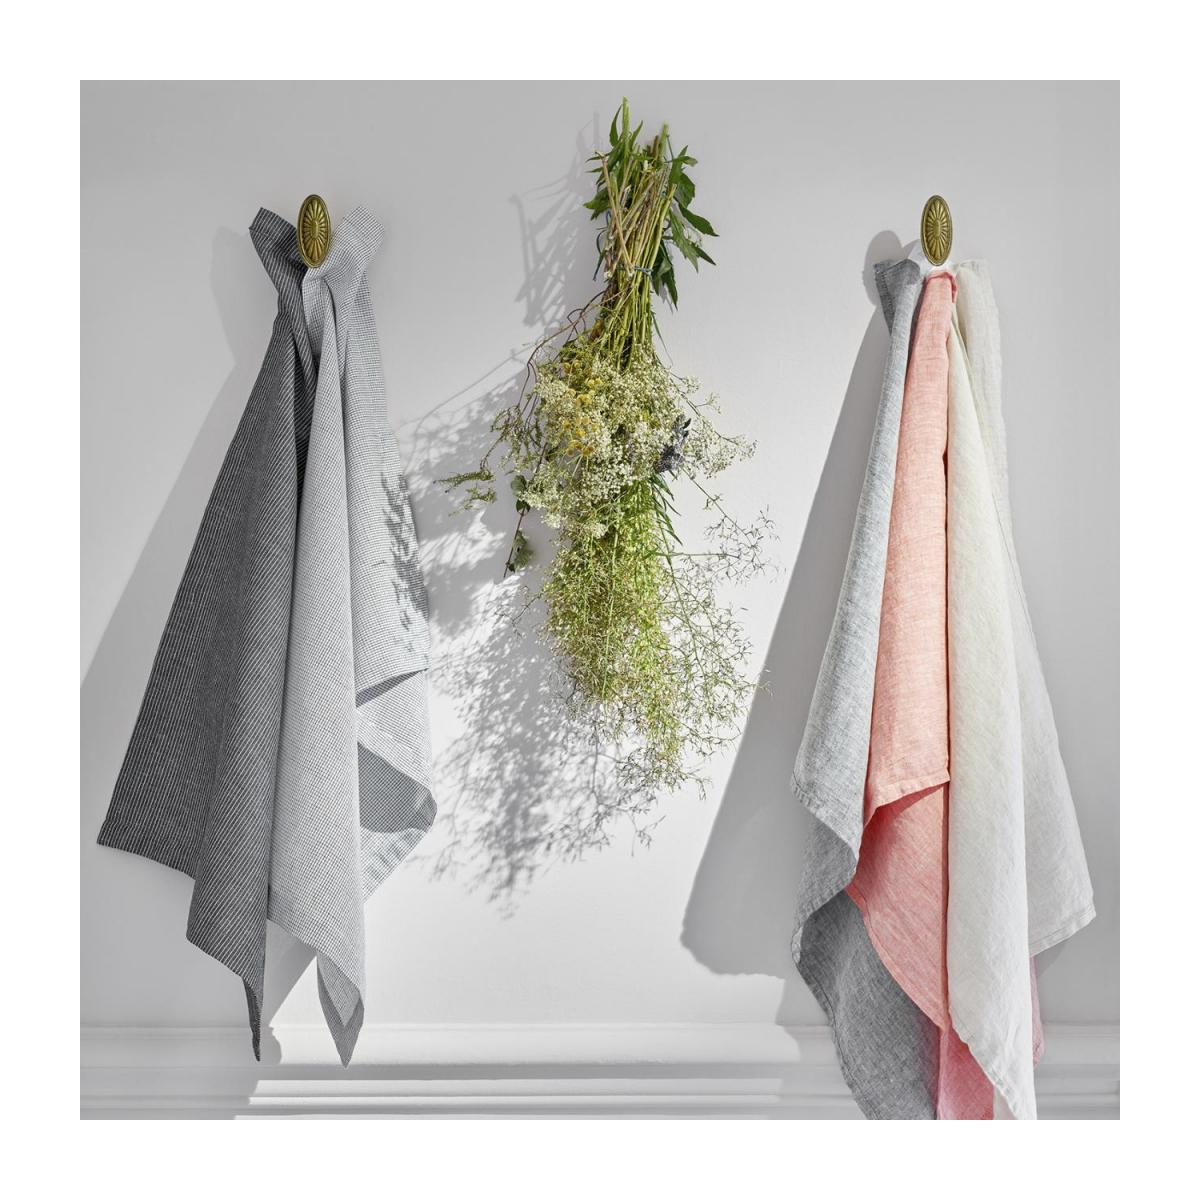 Kitchen towel 50x70cm made of flax, coral n°2